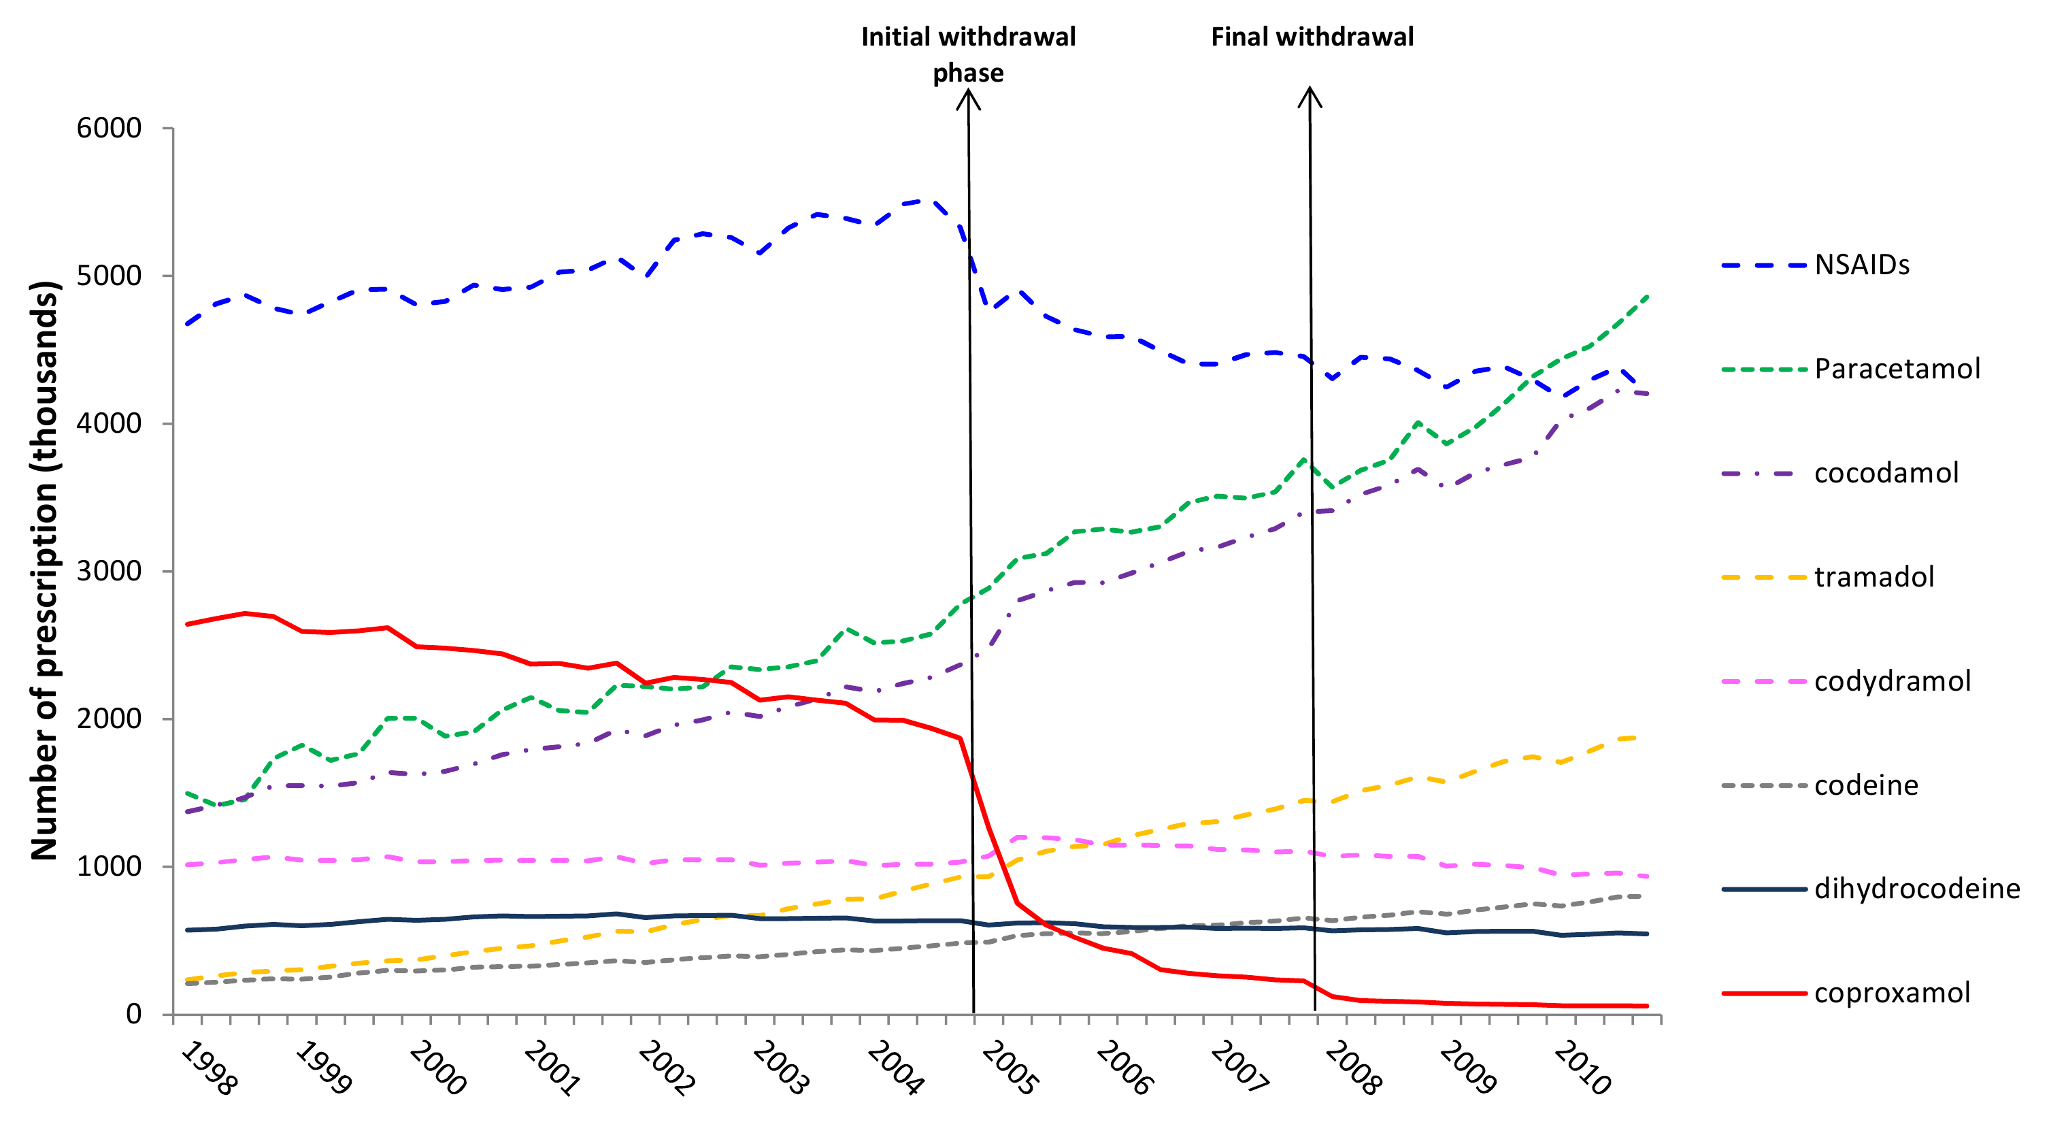 Trends in prescriptions dispensed for co-proxamol and seven other analgesics in England and Wales, 1998–2010.